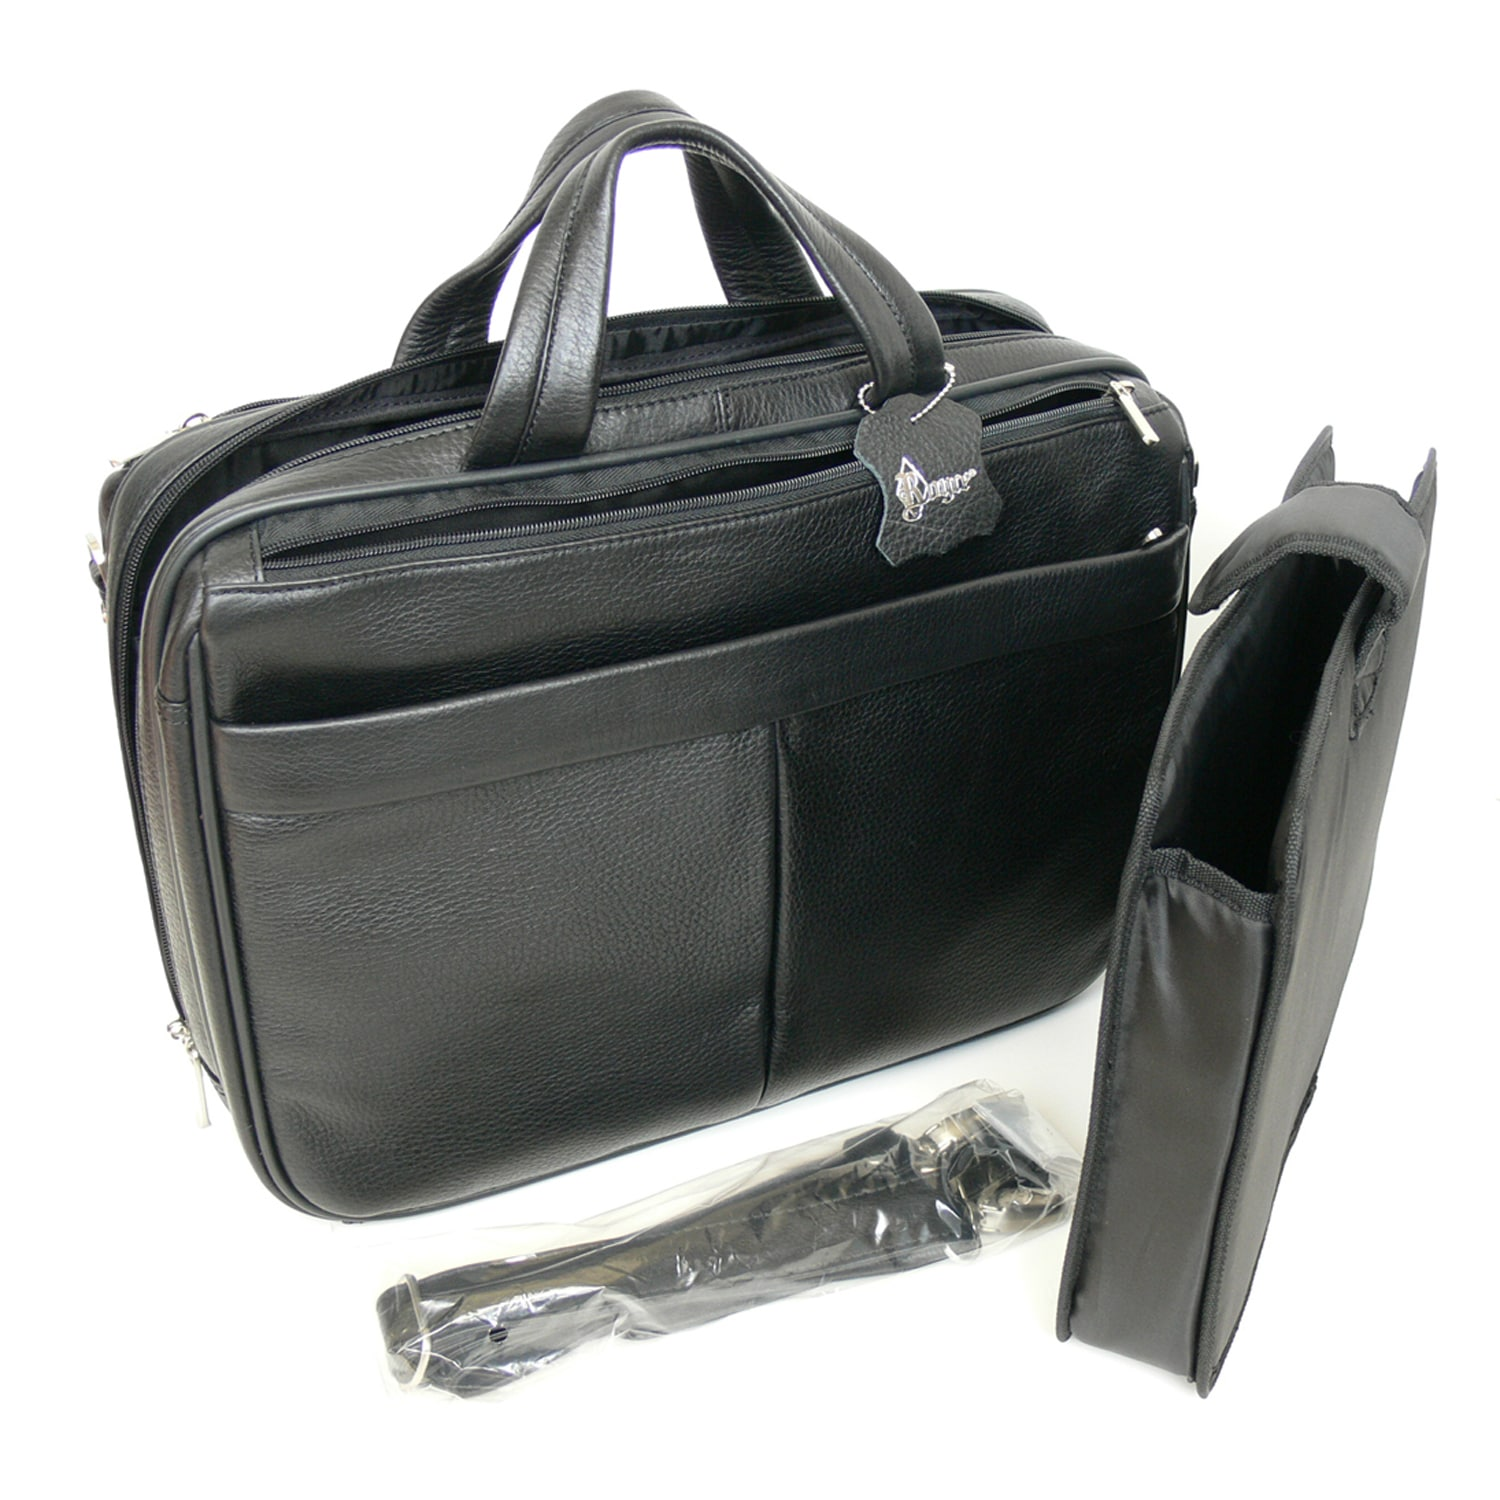 e8ce92b5badc Shop Royce Leather  Blair  Genuine Leather 15-inch Laptop Briefcase - Free  Shipping Today - Overstock.com - 10085663